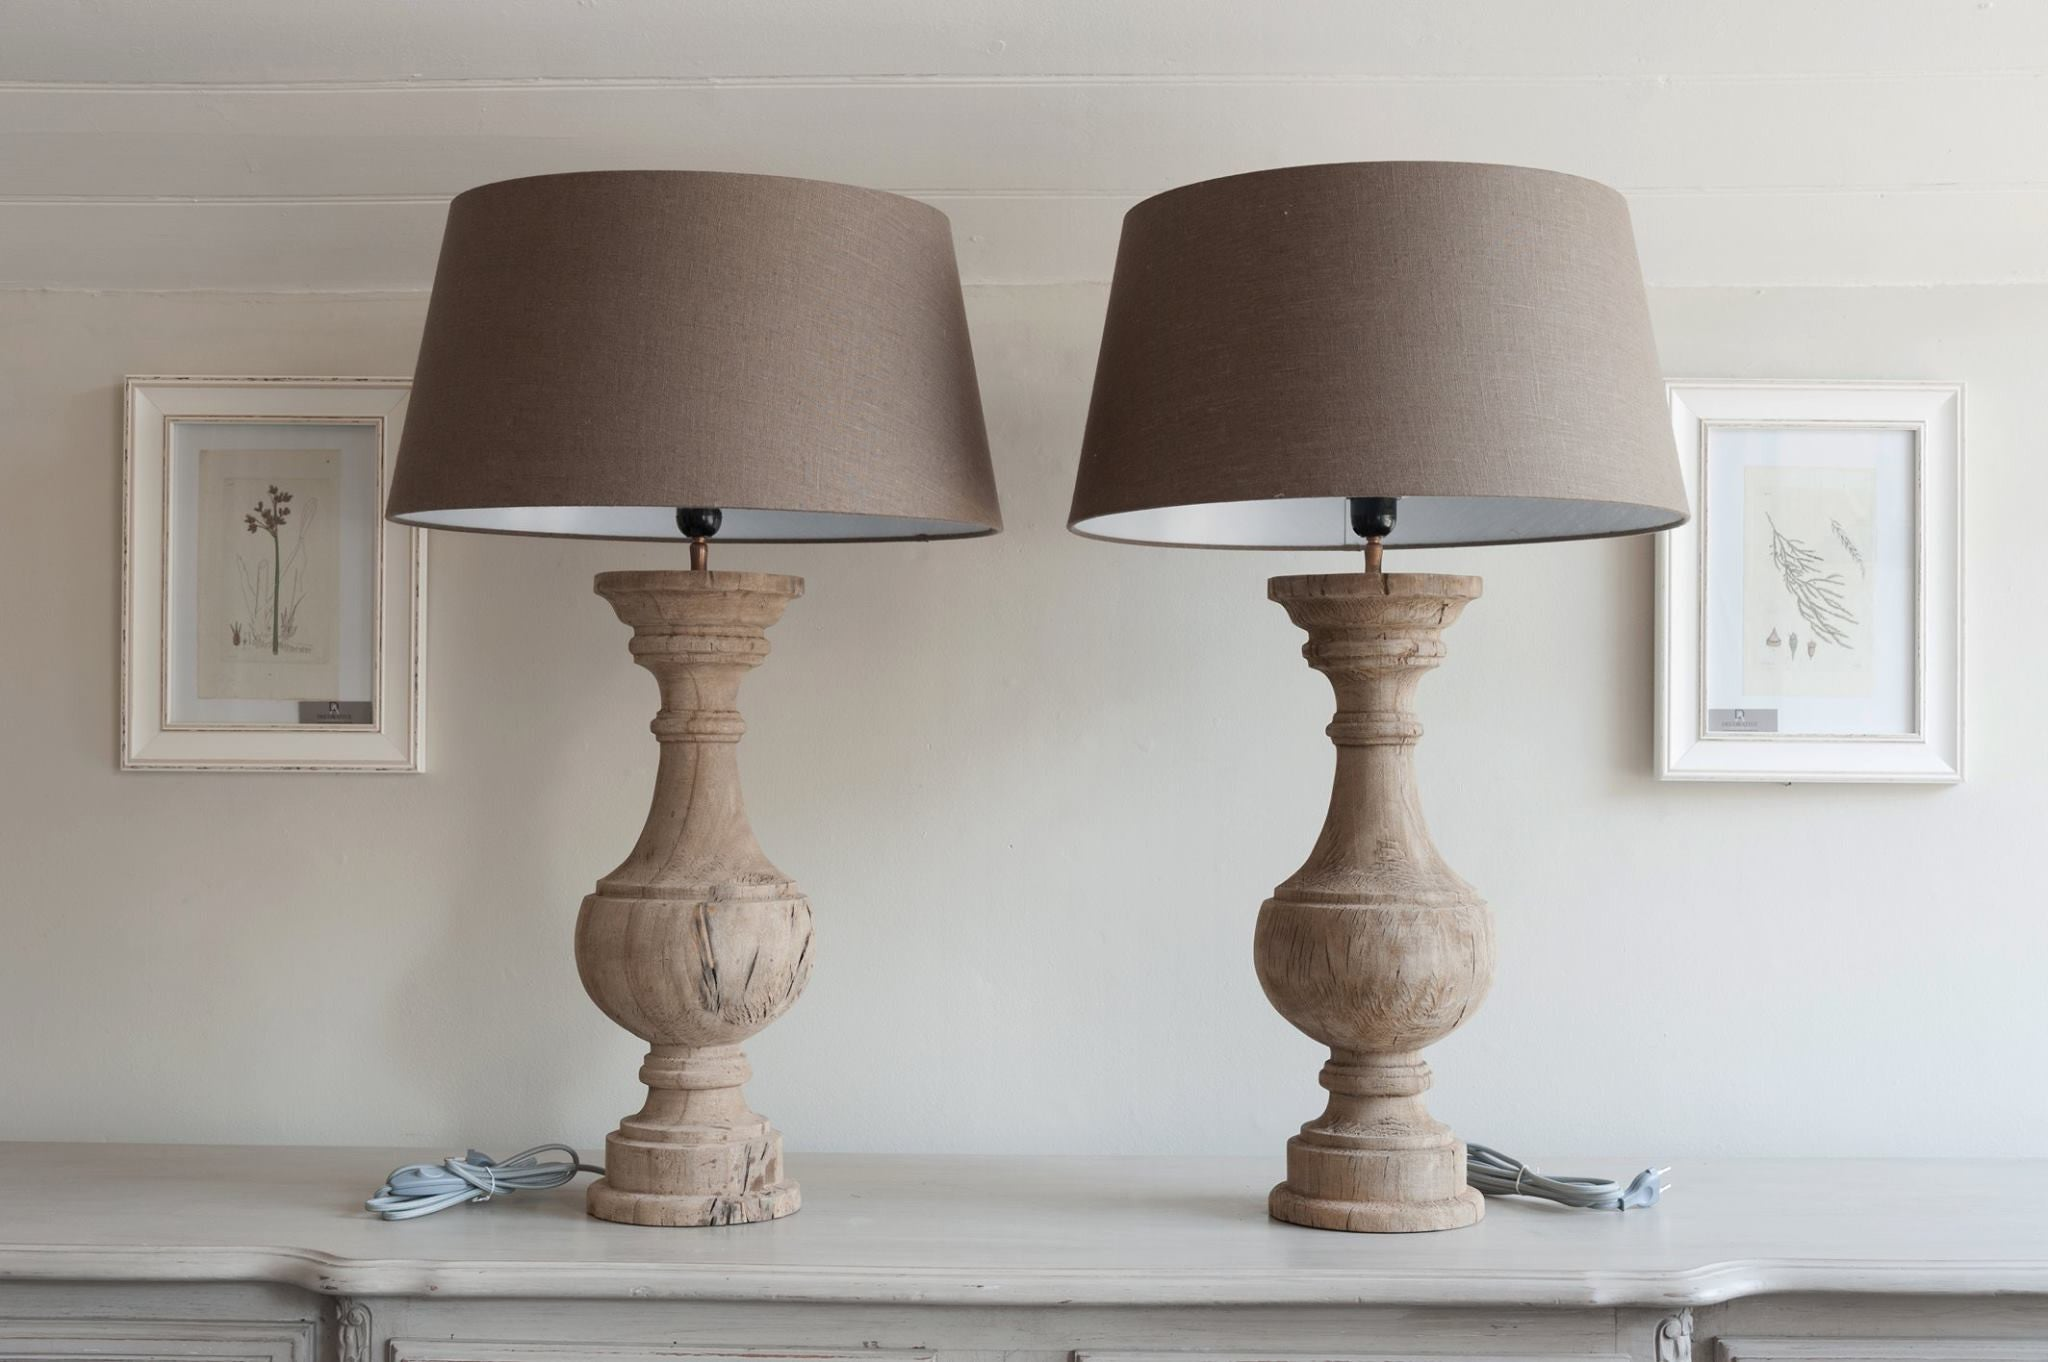 Stunning pair carved wood table lamps with linen shades stunning pair carved wood table lamps with linen shades decorative antiques uk 3 geotapseo Images